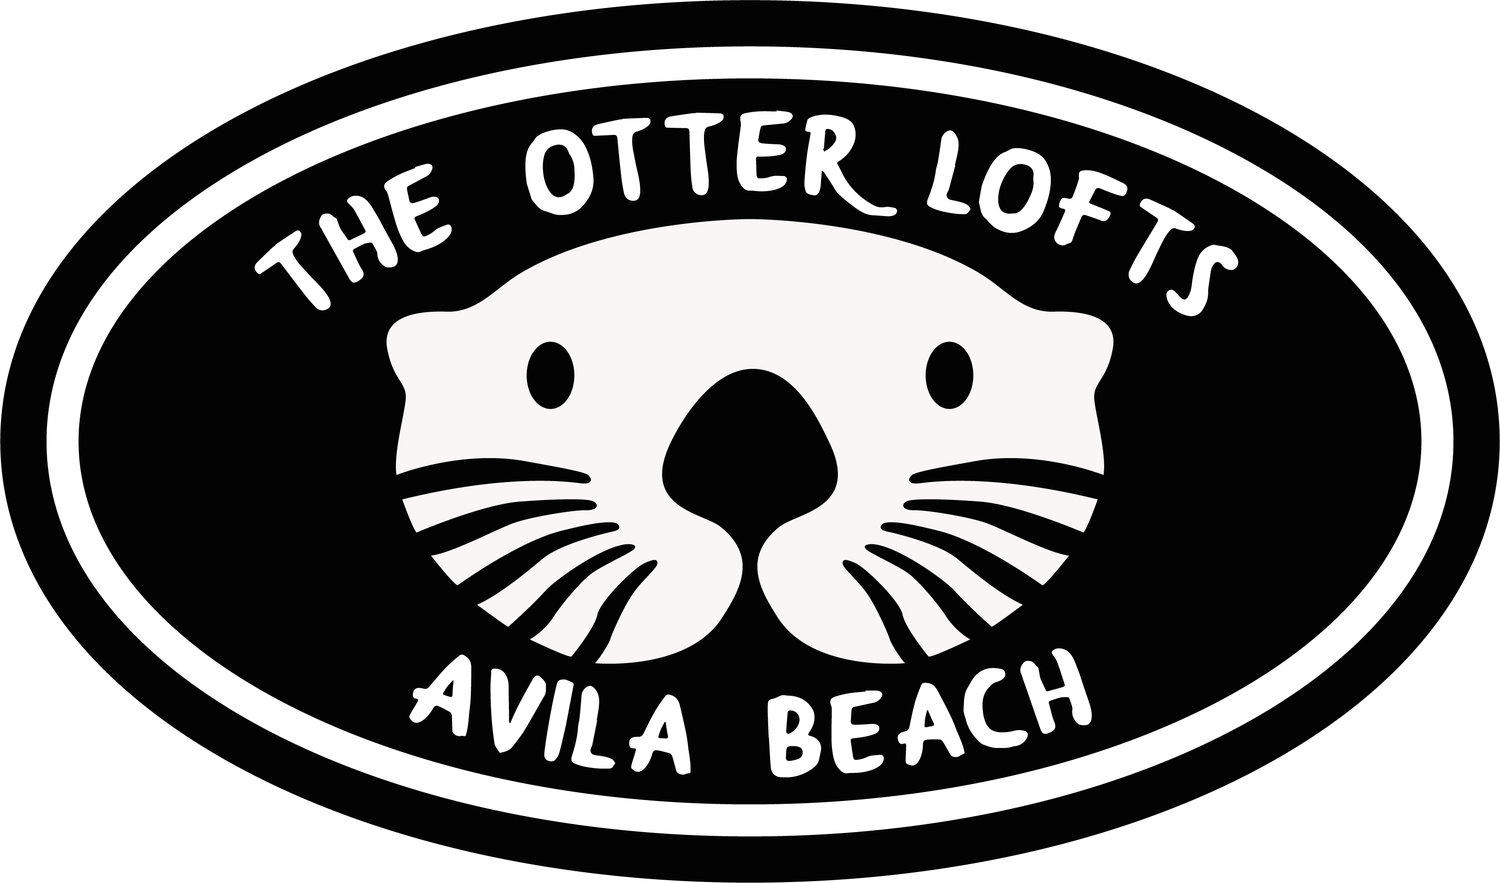 The Otter Lofts Vacation Rentals in Avila Beach